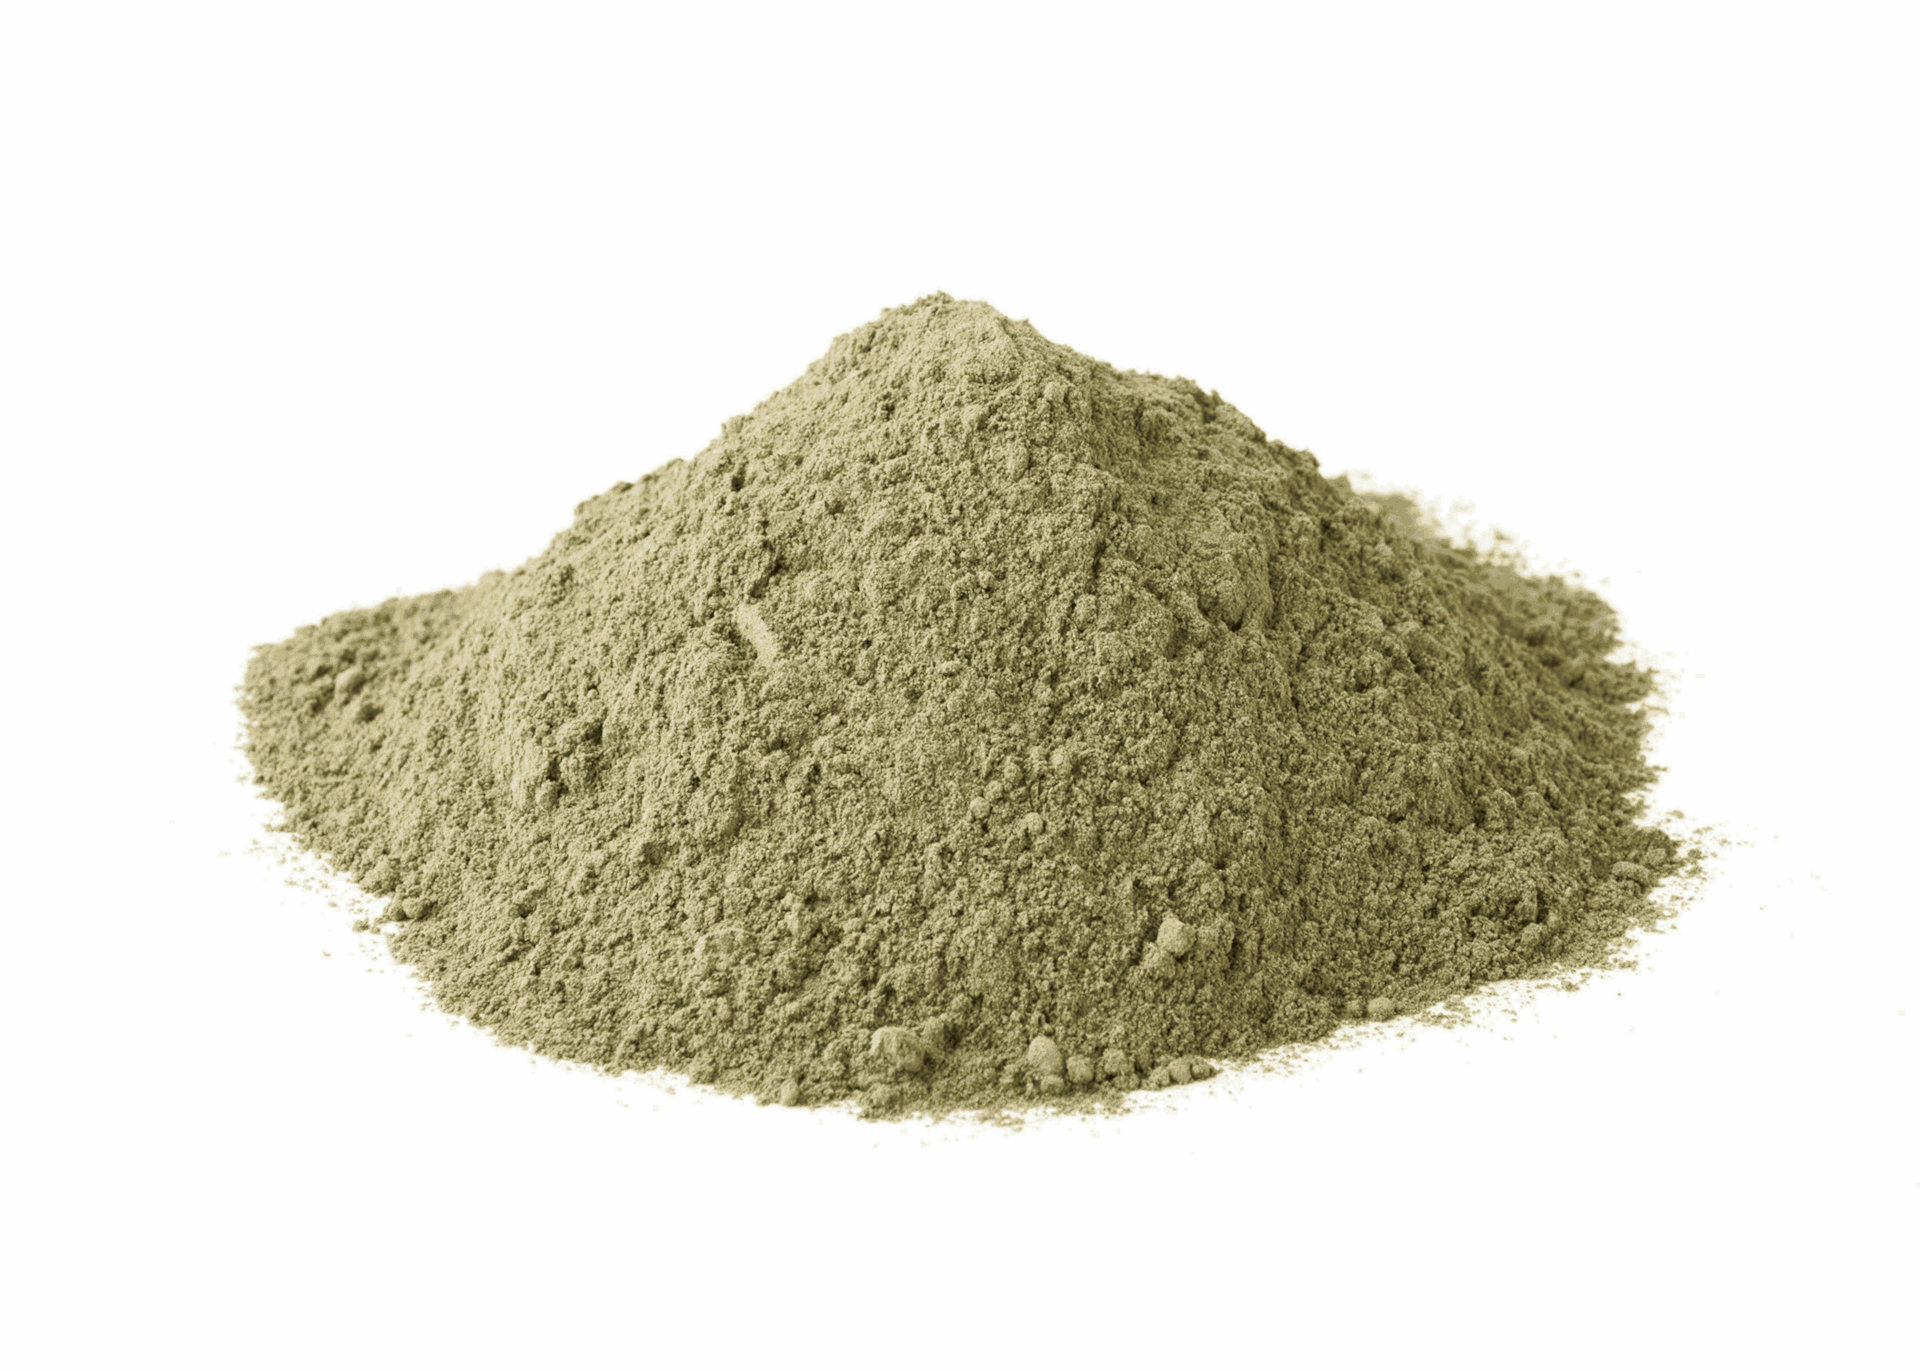 peruvian torch powder